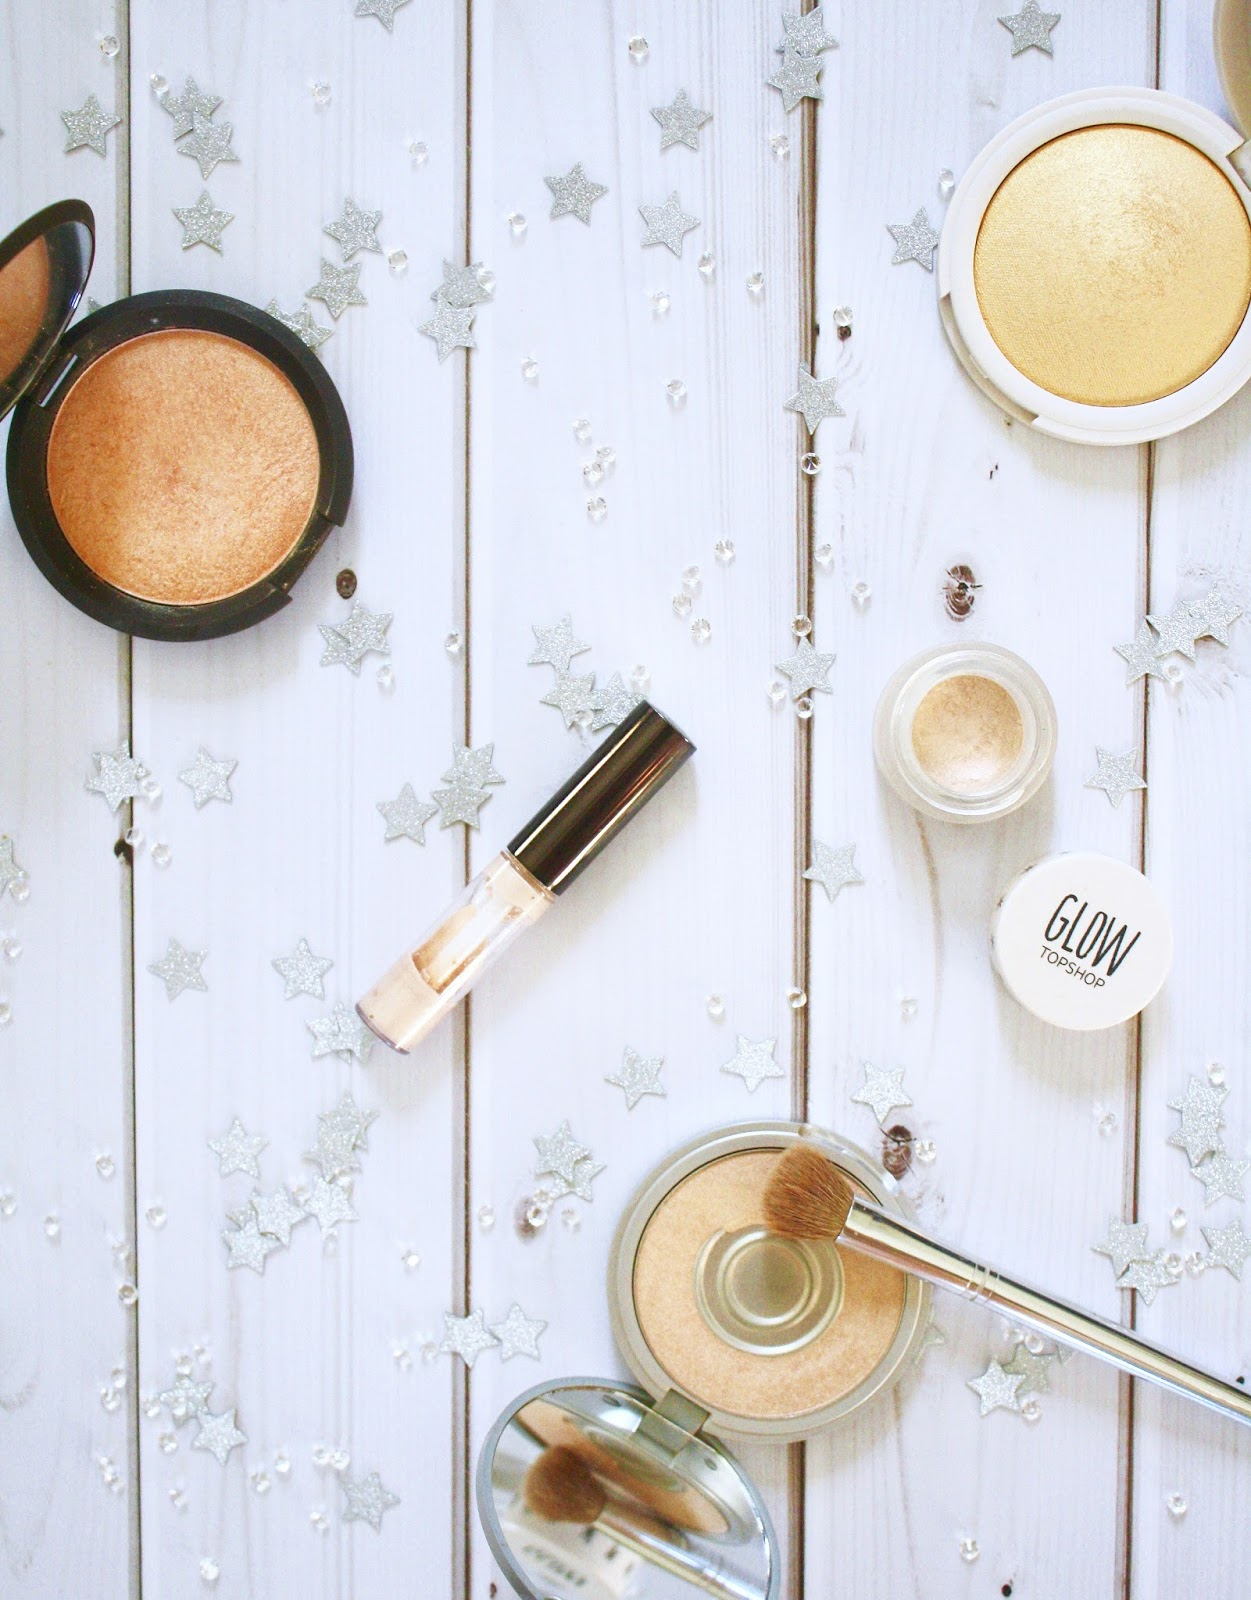 Top 5 Makeup Highlighters